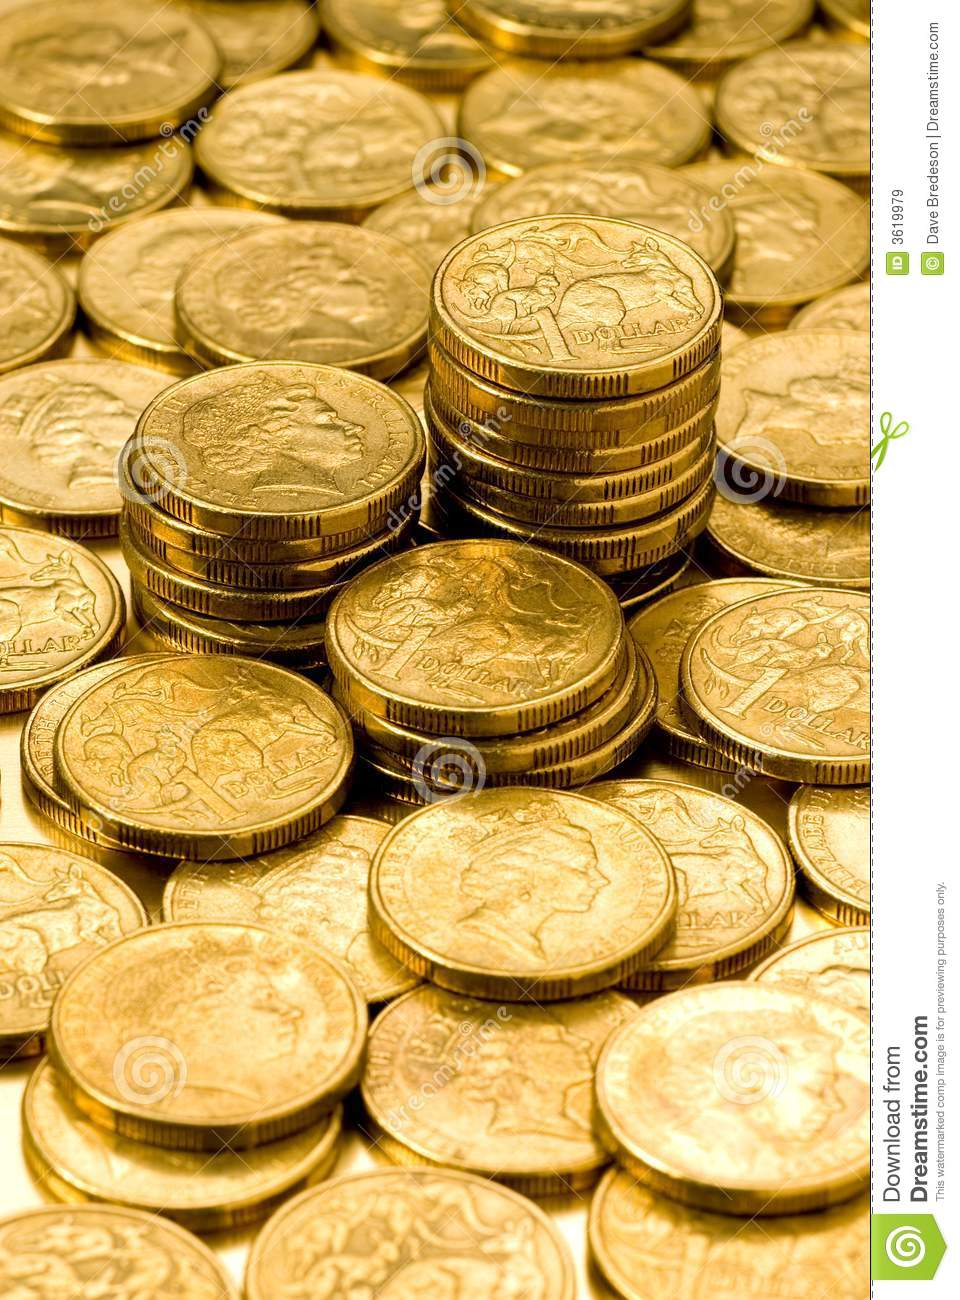 Australian Money Dollars Coins Royalty Free Stock Images Image 3619979